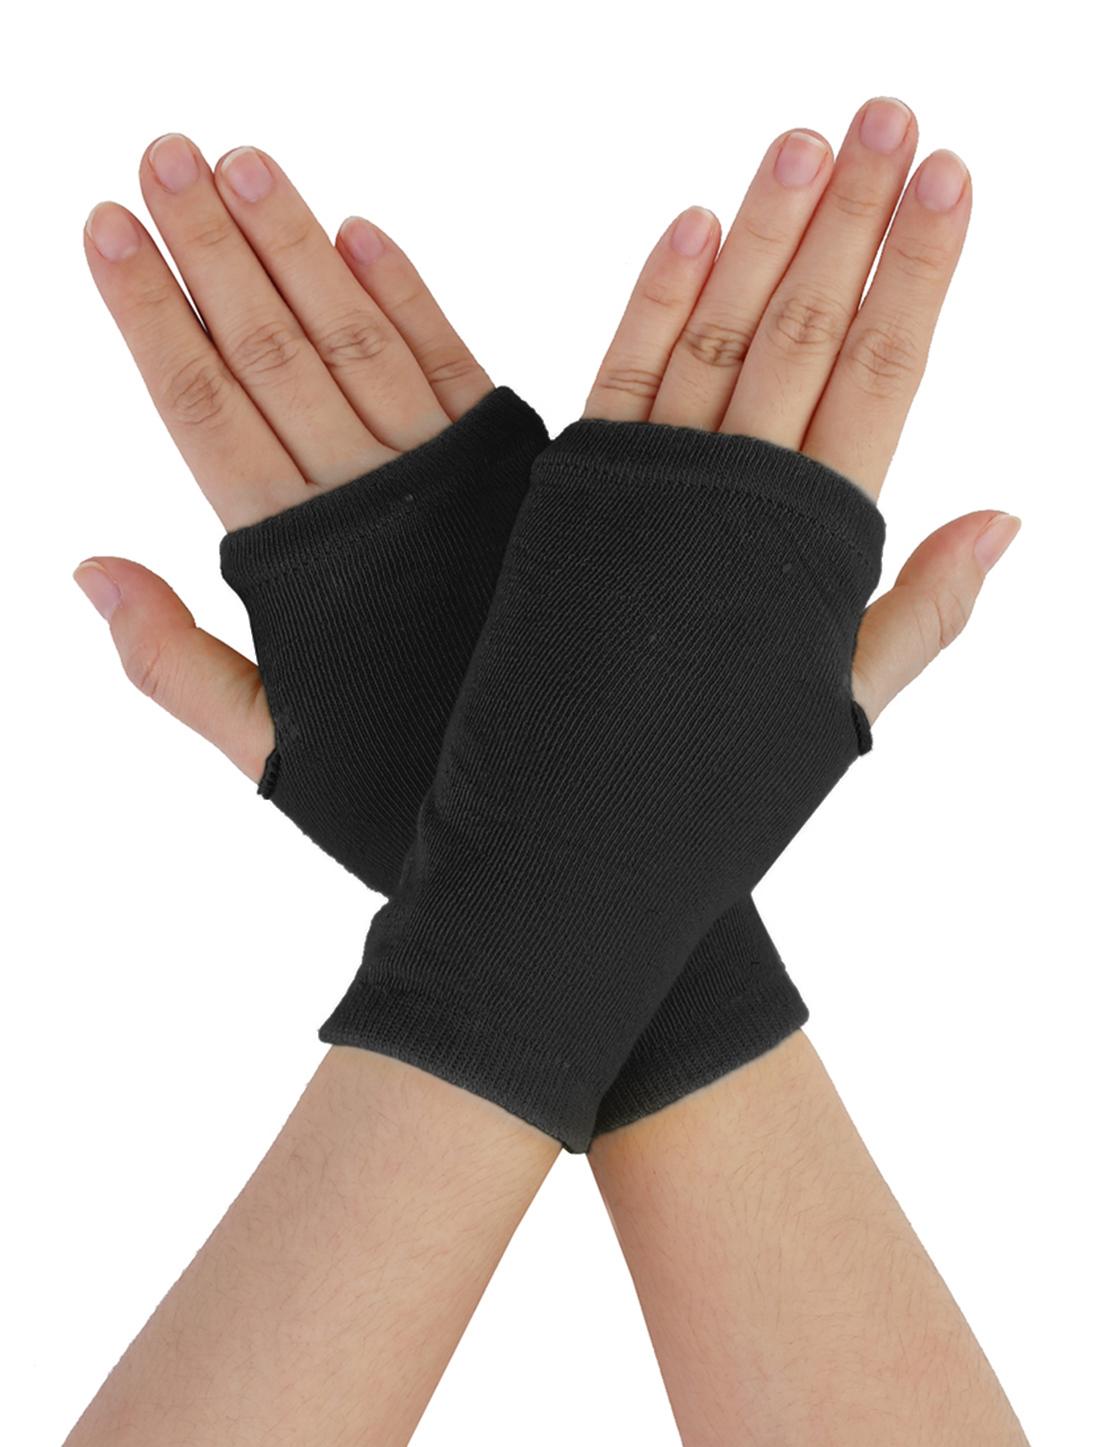 Pair Black Grid Fingerless Elastic Wrist Short Gloves Winter Mittens for Ladies